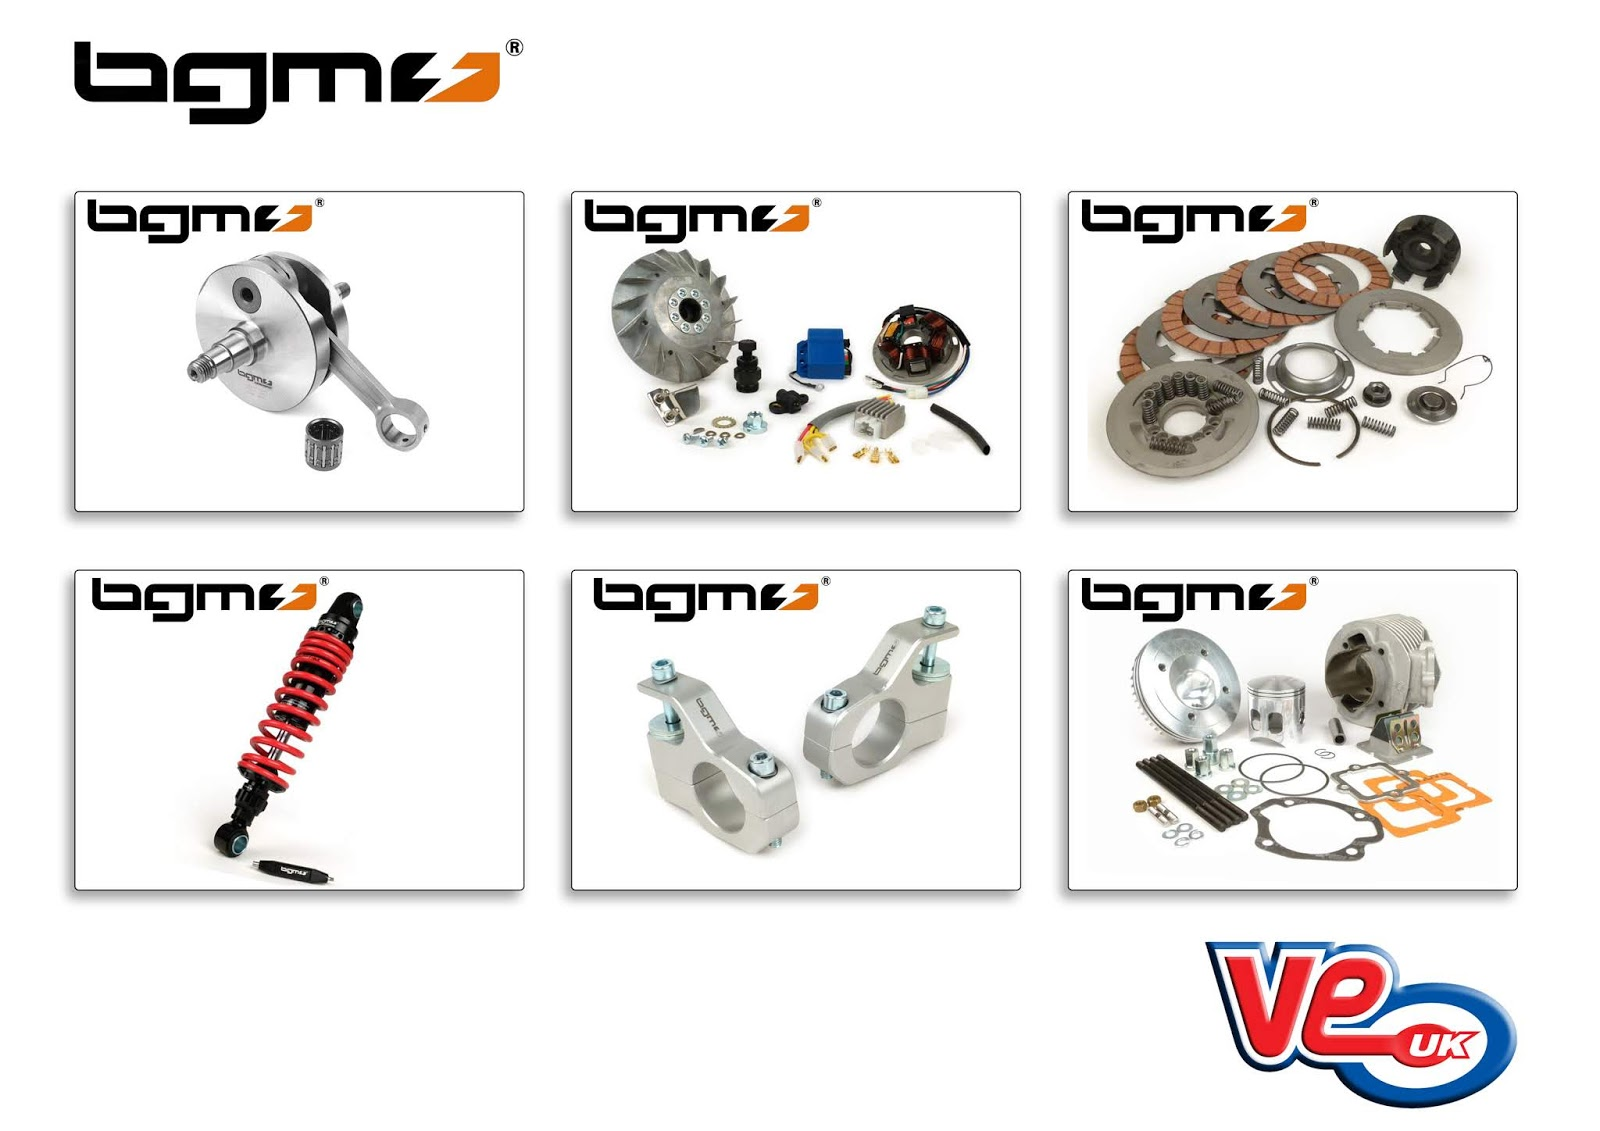 BGM Scooter Parts Now Available from VE (UK)